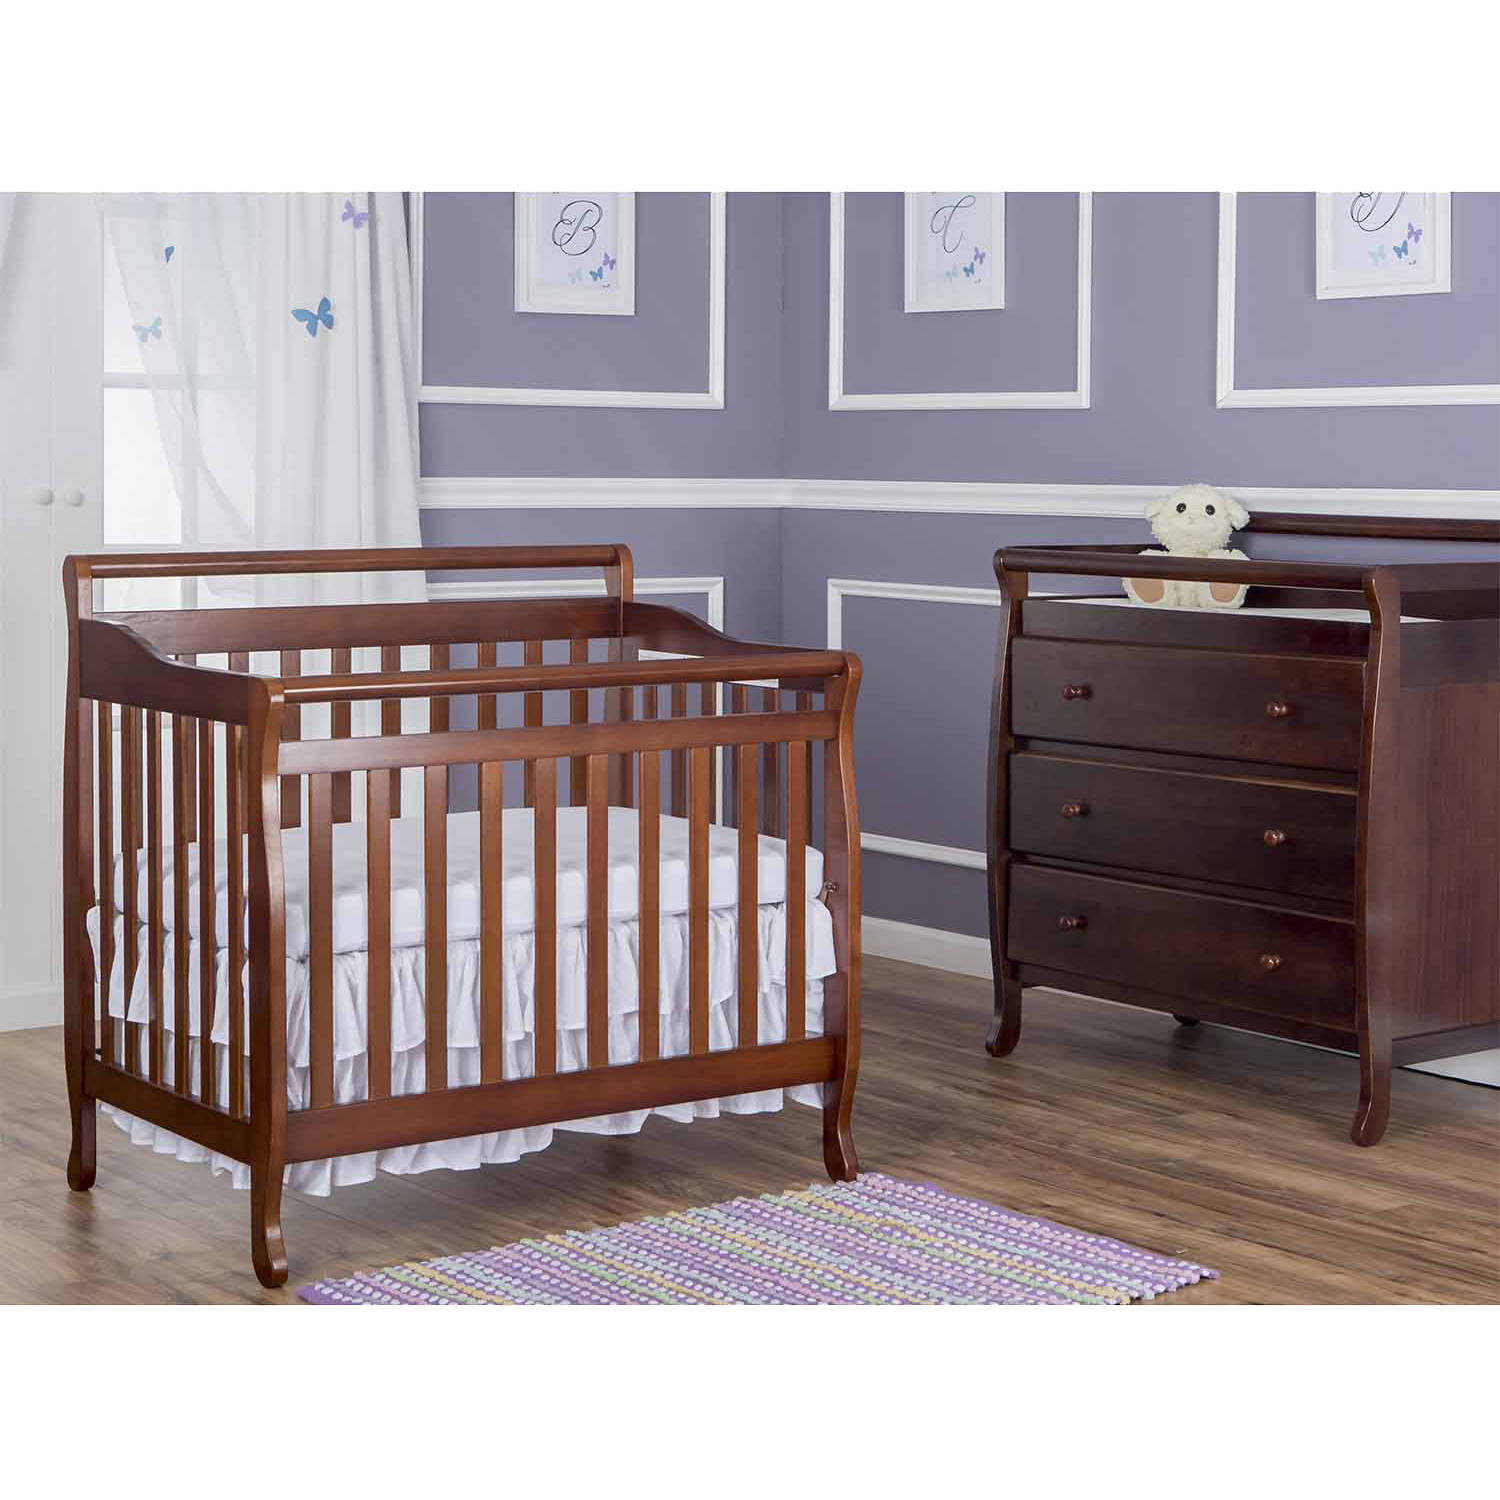 Dream On Me 4-in-1 MINI Portable Convertible Crib, Choose Your Finish